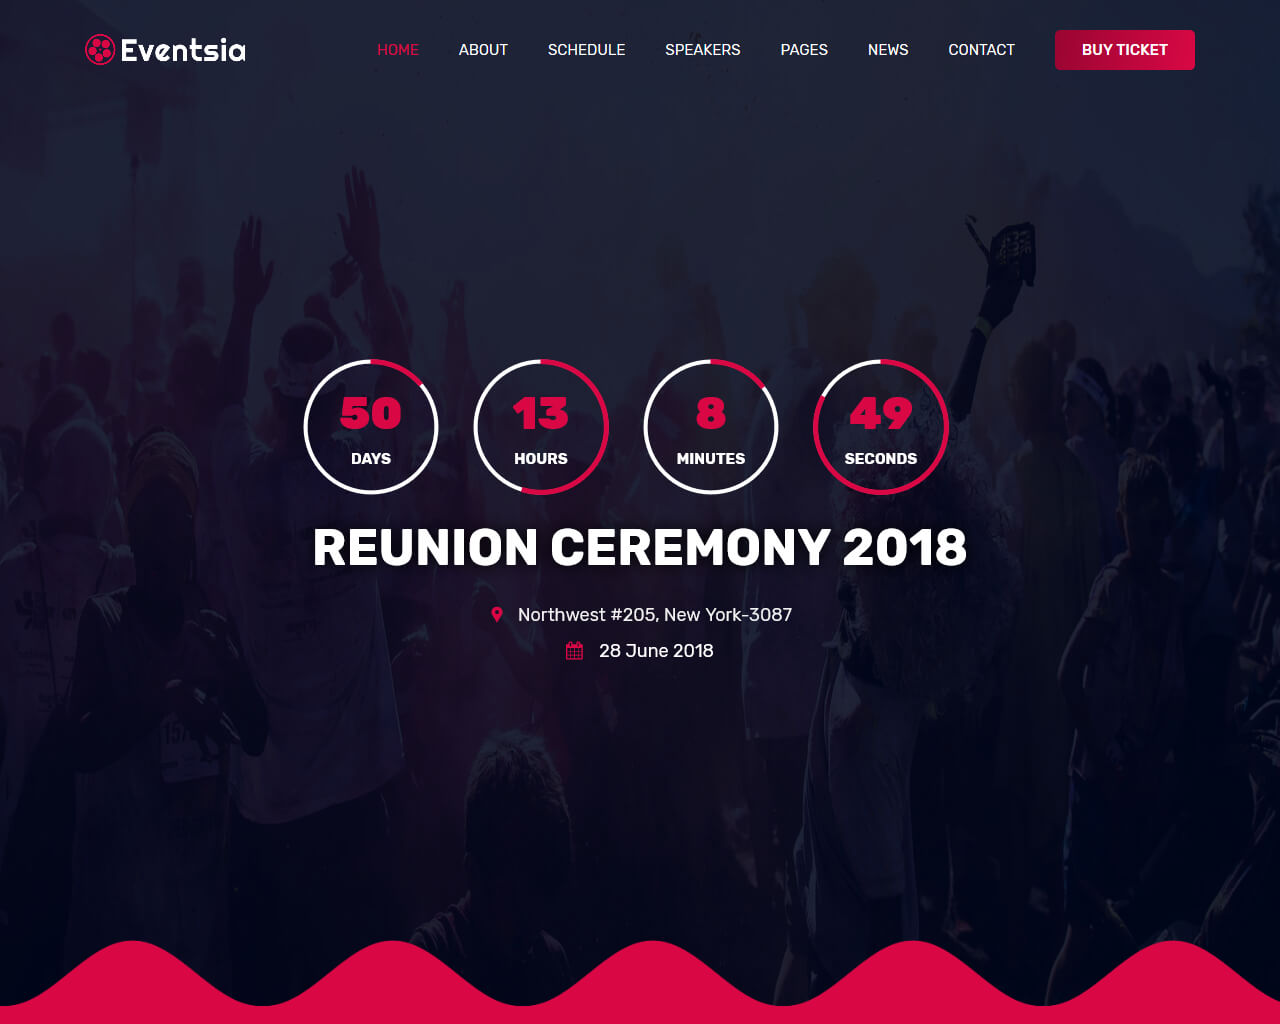 Eventsia Website Template